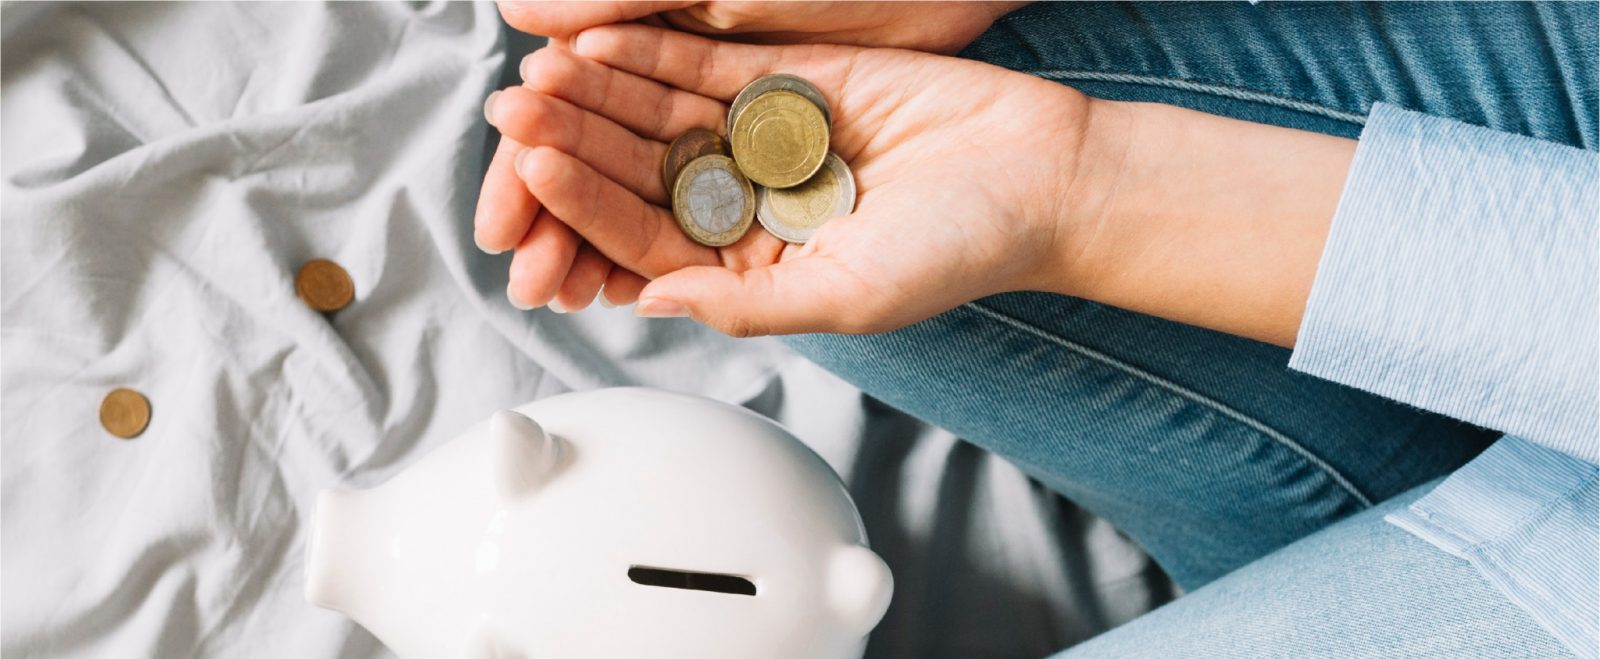 Women holding coins in hand and a piggy bank